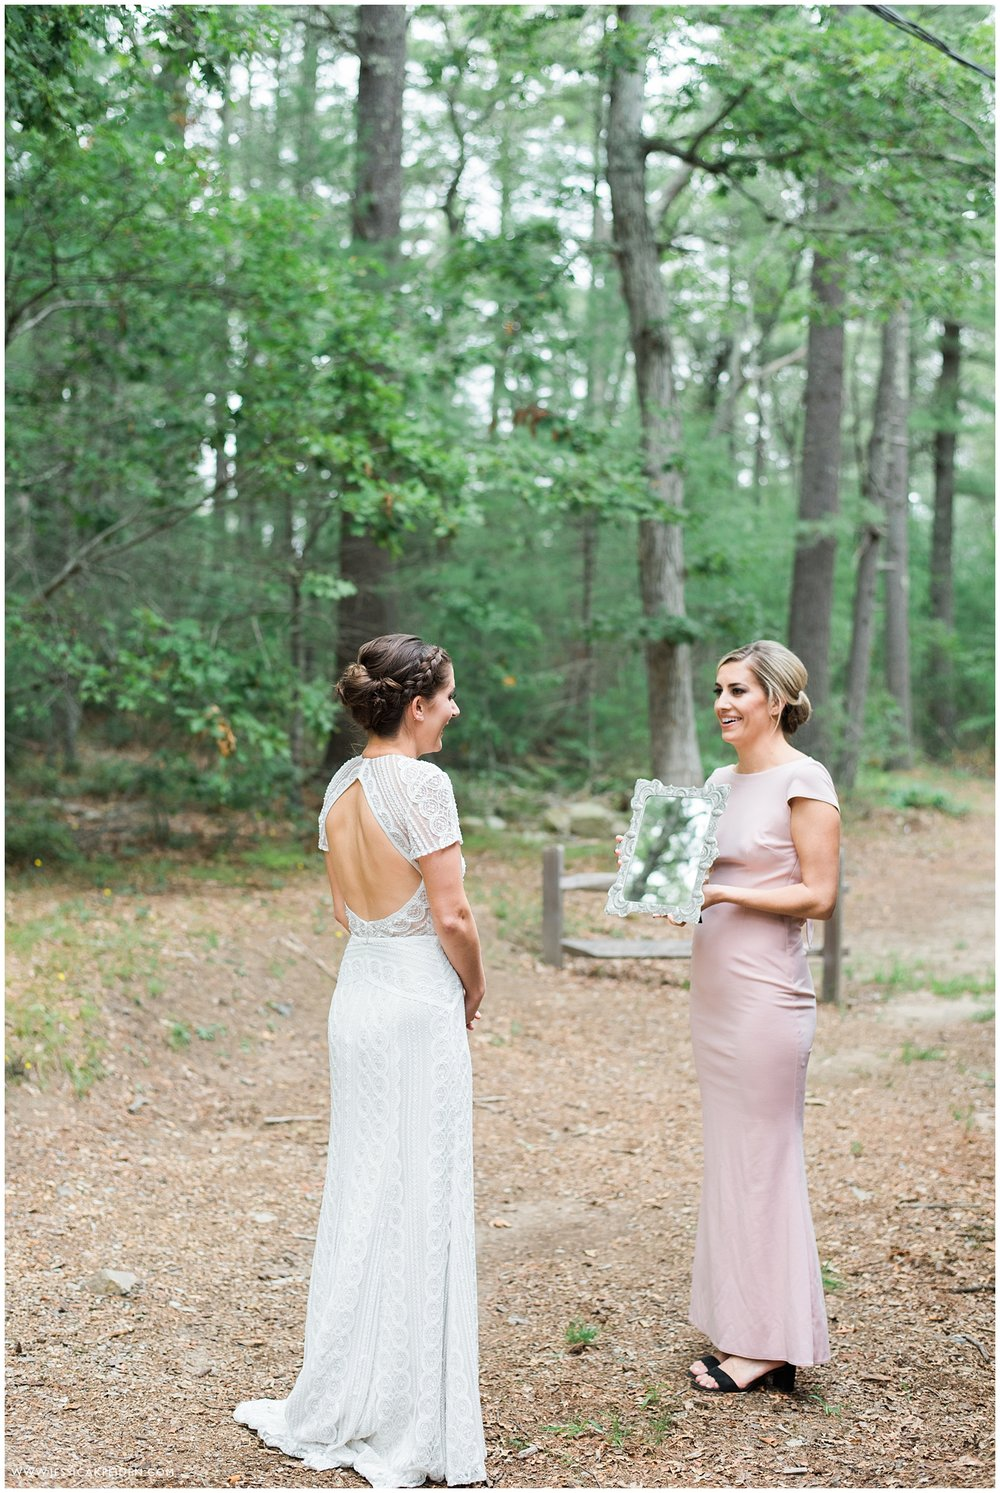 Jessica K Feiden Photography_Camp Wing Duxbury Wedding_0013.jpg